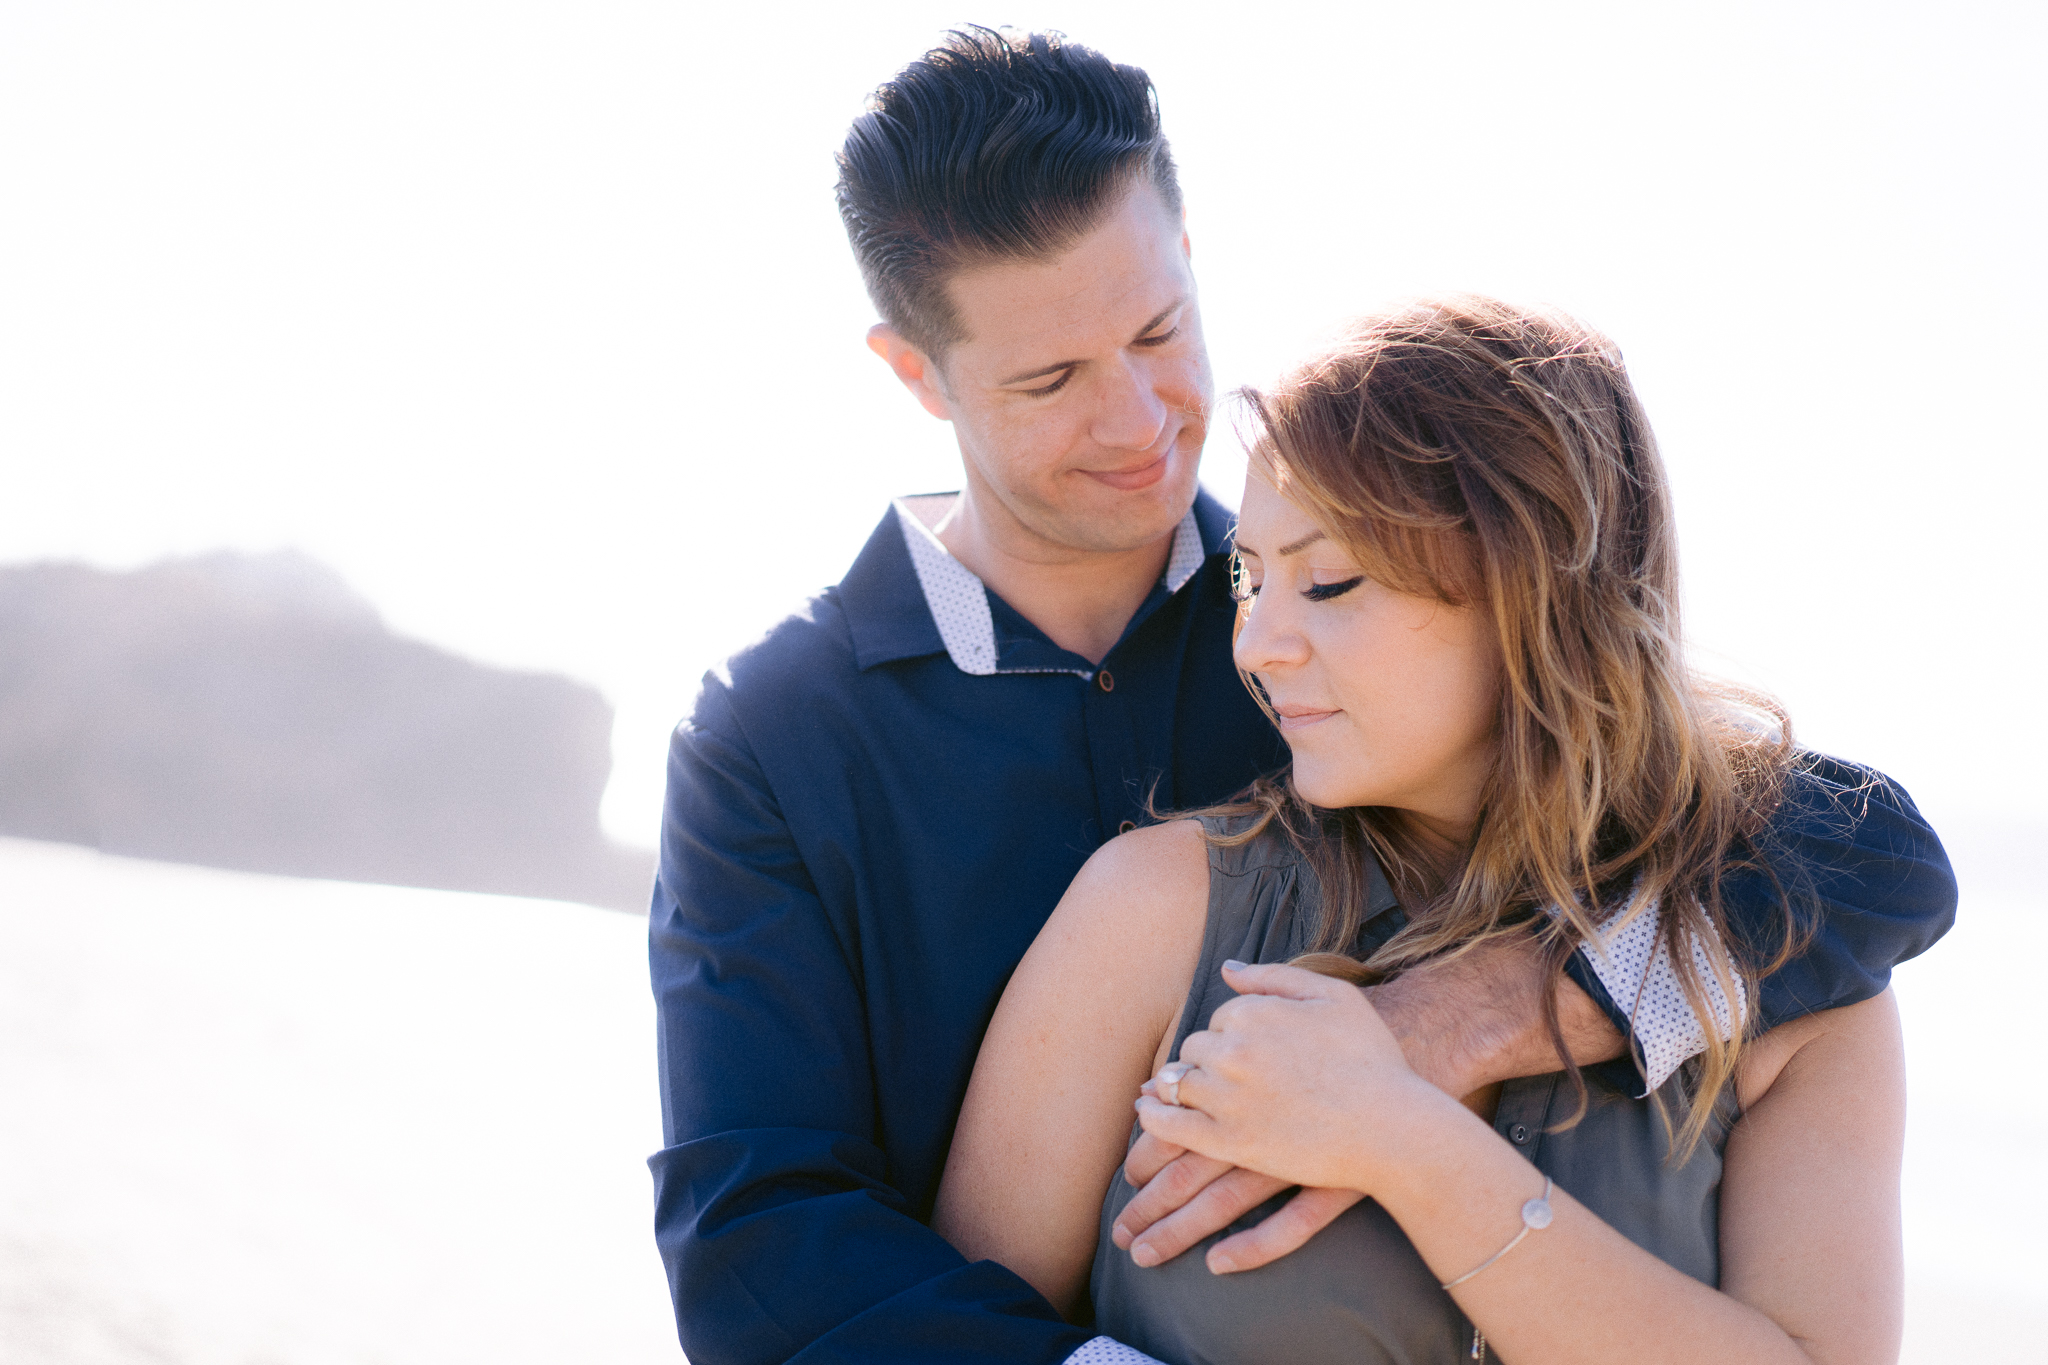 Close up engagement photo of an engaged couple embracing in front of the Pacific Ocean at the Sutro Baths in San Francisco.